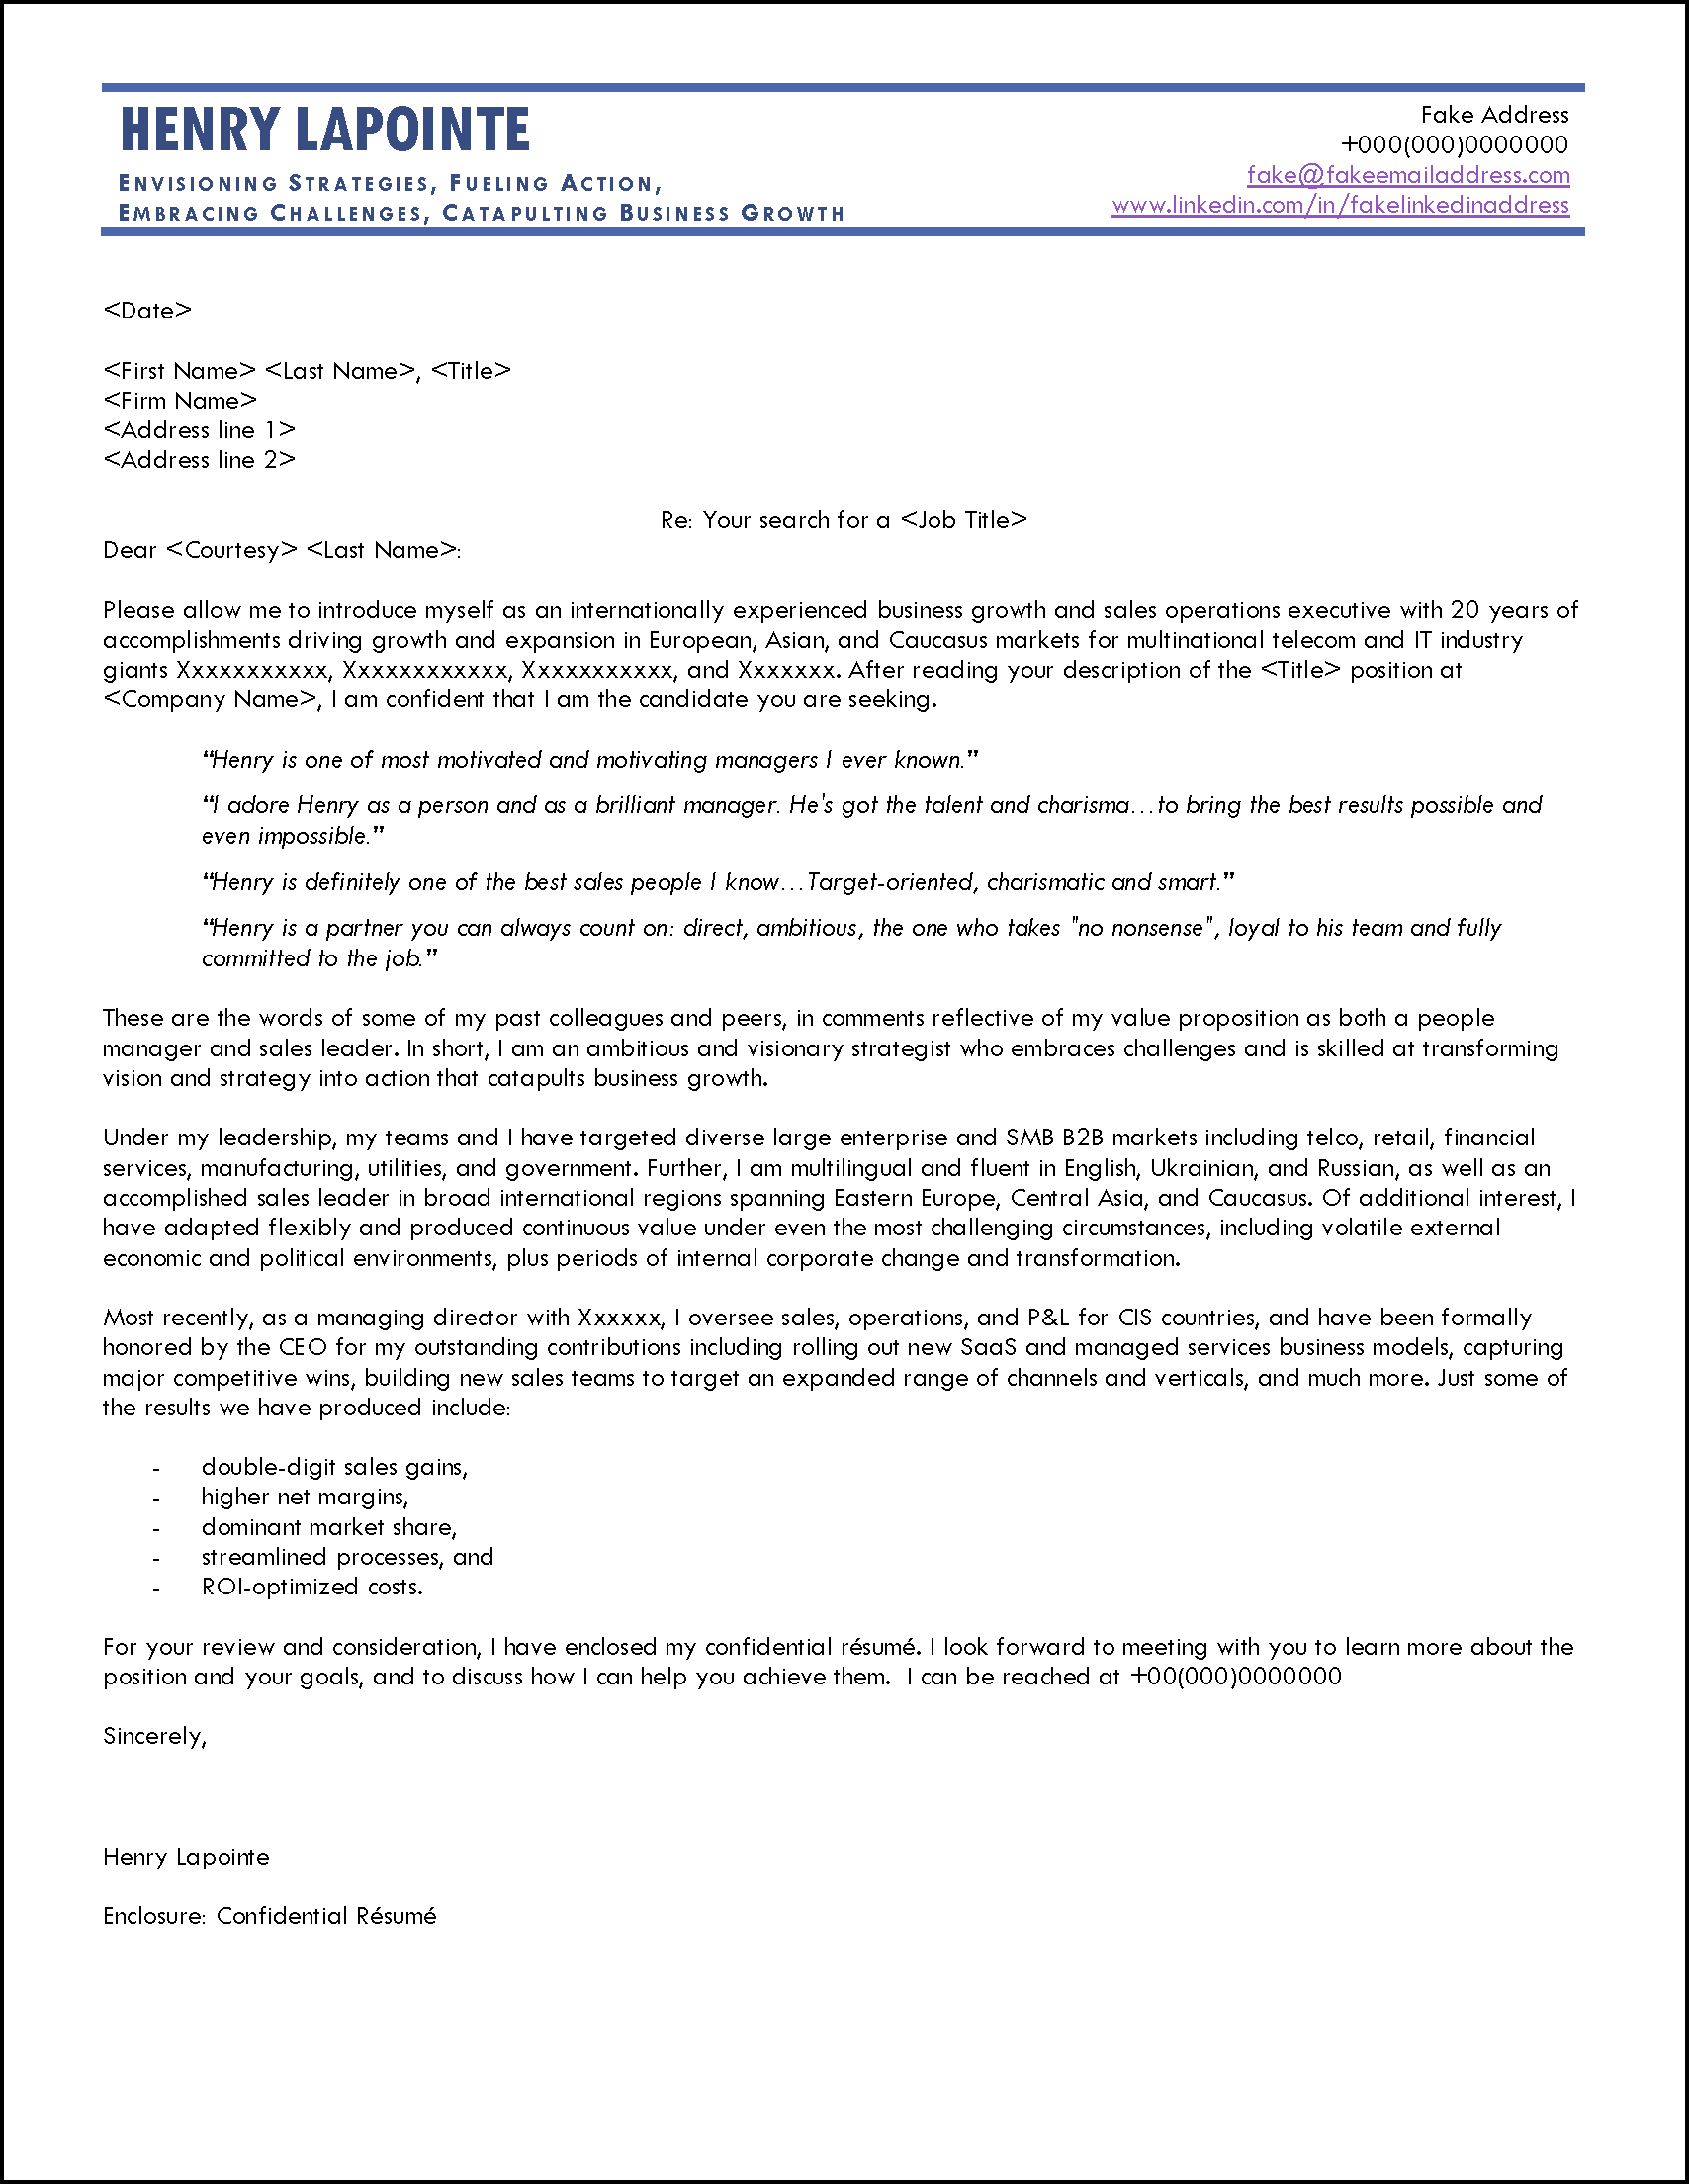 Example of a Cover Letter for Applying for Advertised Jobs